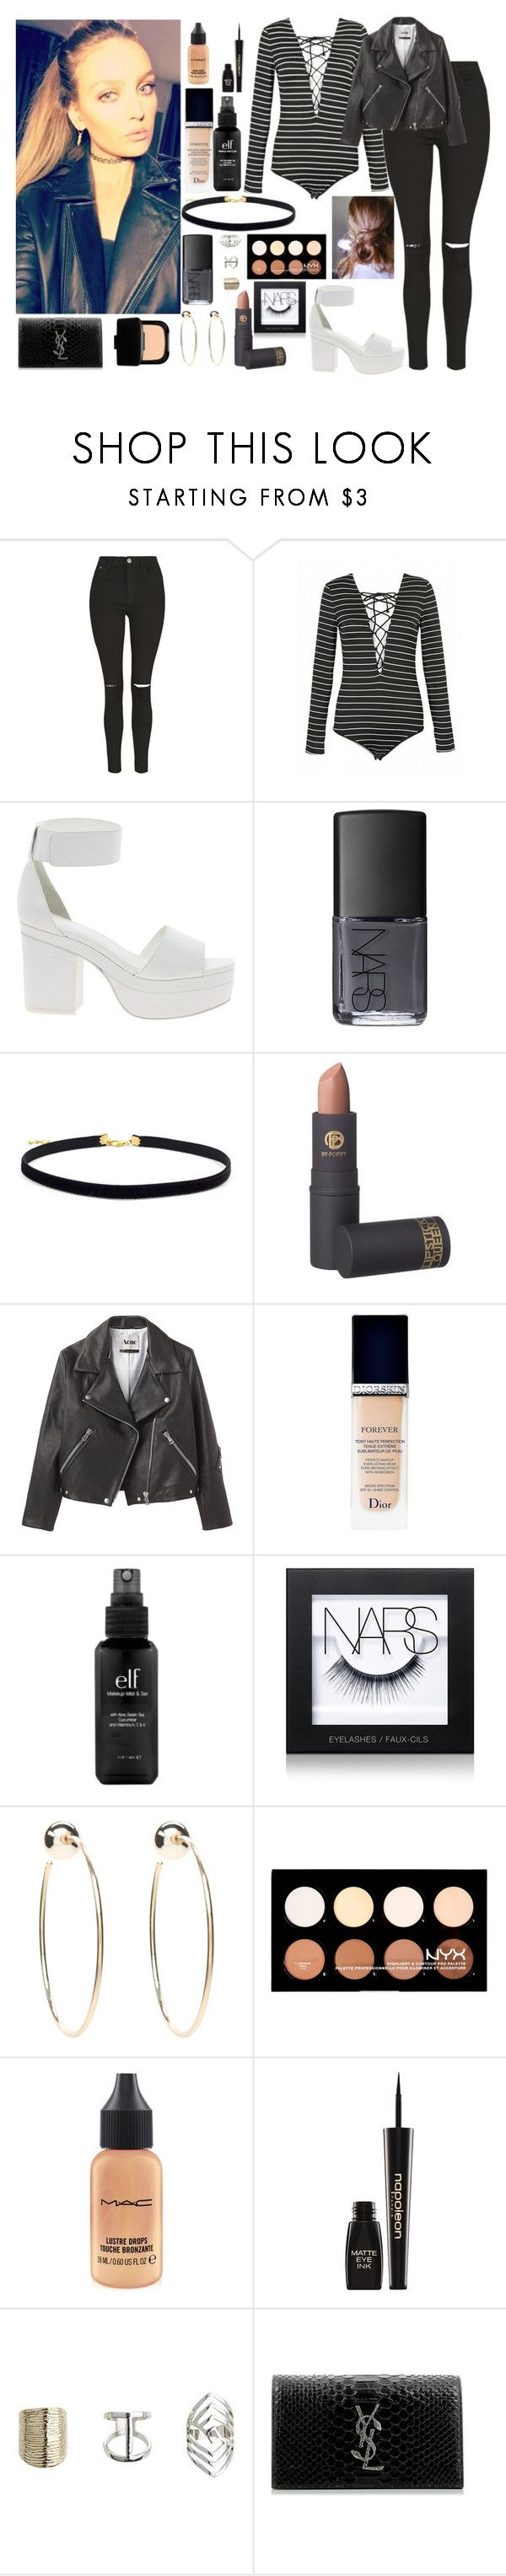 """""""Clubbing with Perrie"""" by kennedey-lynn-freeman ❤ liked on Polyvore featuring Topshop, ASOS, NARS Cosmetics, Lipstick Queen, Acne Studios, Christian Dior, e.l.f., Bebe, NYX and MAC Cosmetics"""